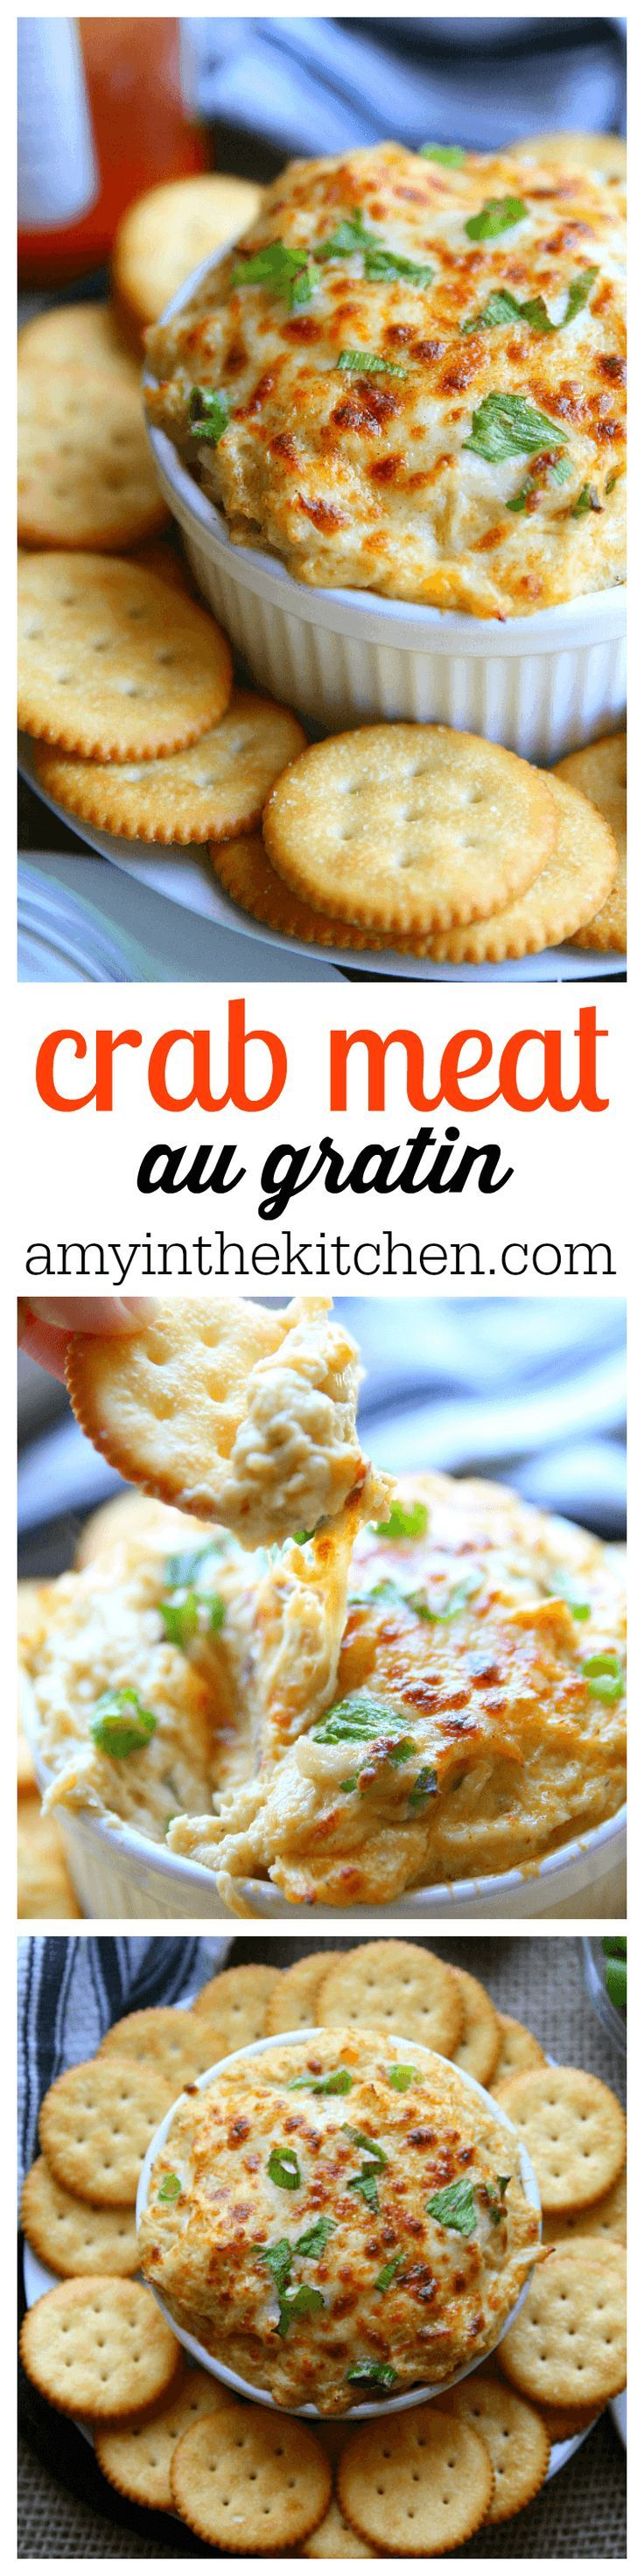 You'll love this recipe for Crab Meat au Gratin. White lump crab meat with melted cheese and seasonings, perfect for holiday parties!- Amy in the Kitchen